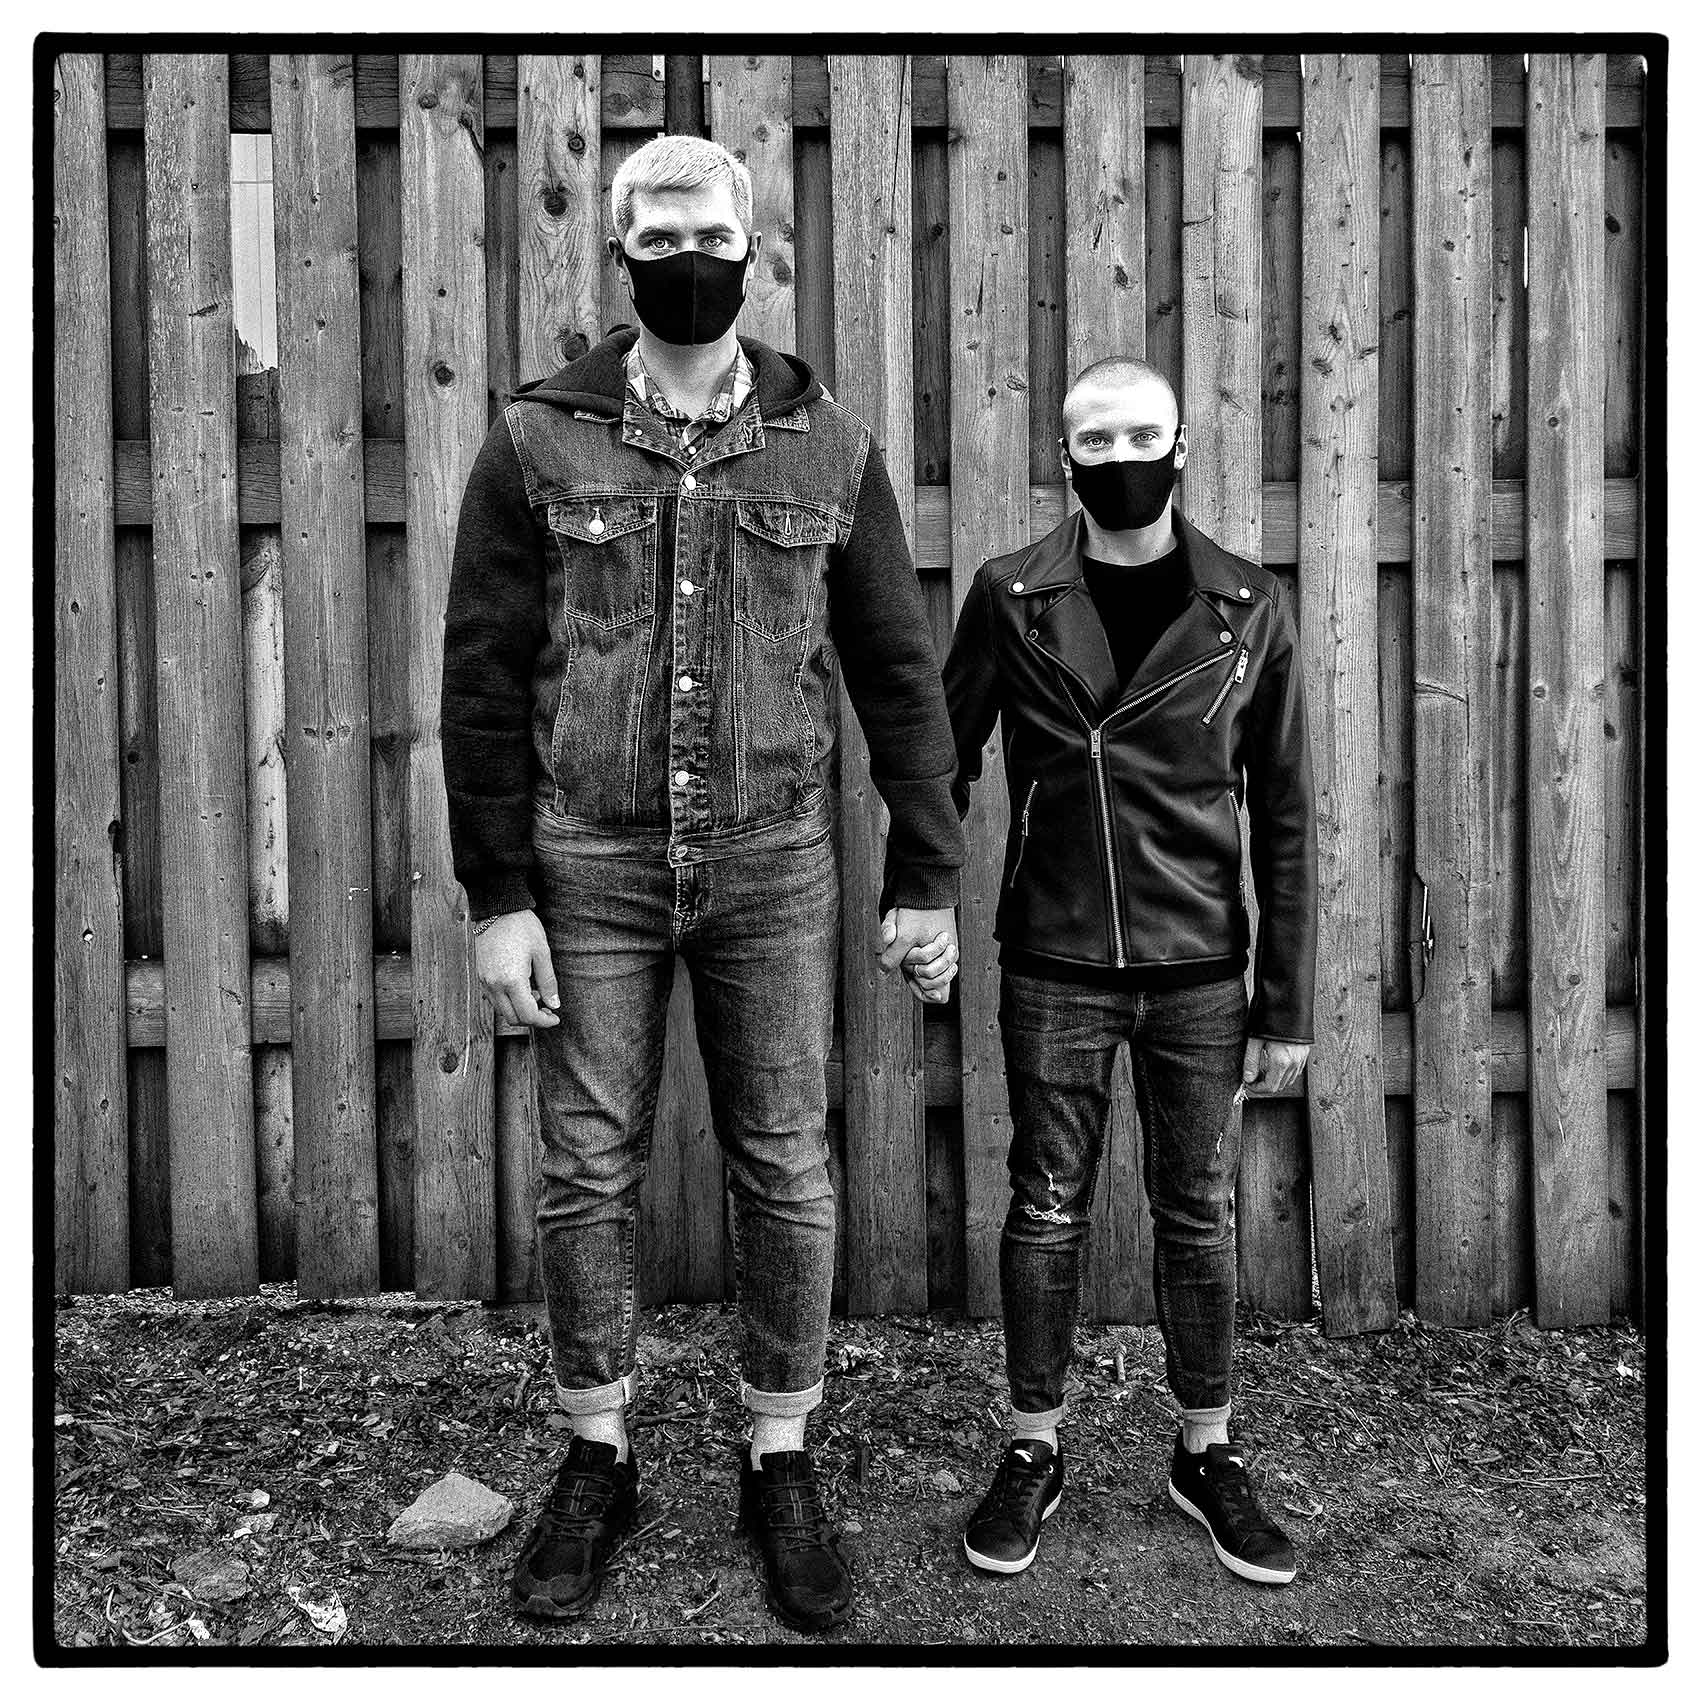 portrait-of-a-gay-male-couple-wearing-facemasks-during-the-pandemic-by-Toronto-portrait-photographer-John-Hryniuk